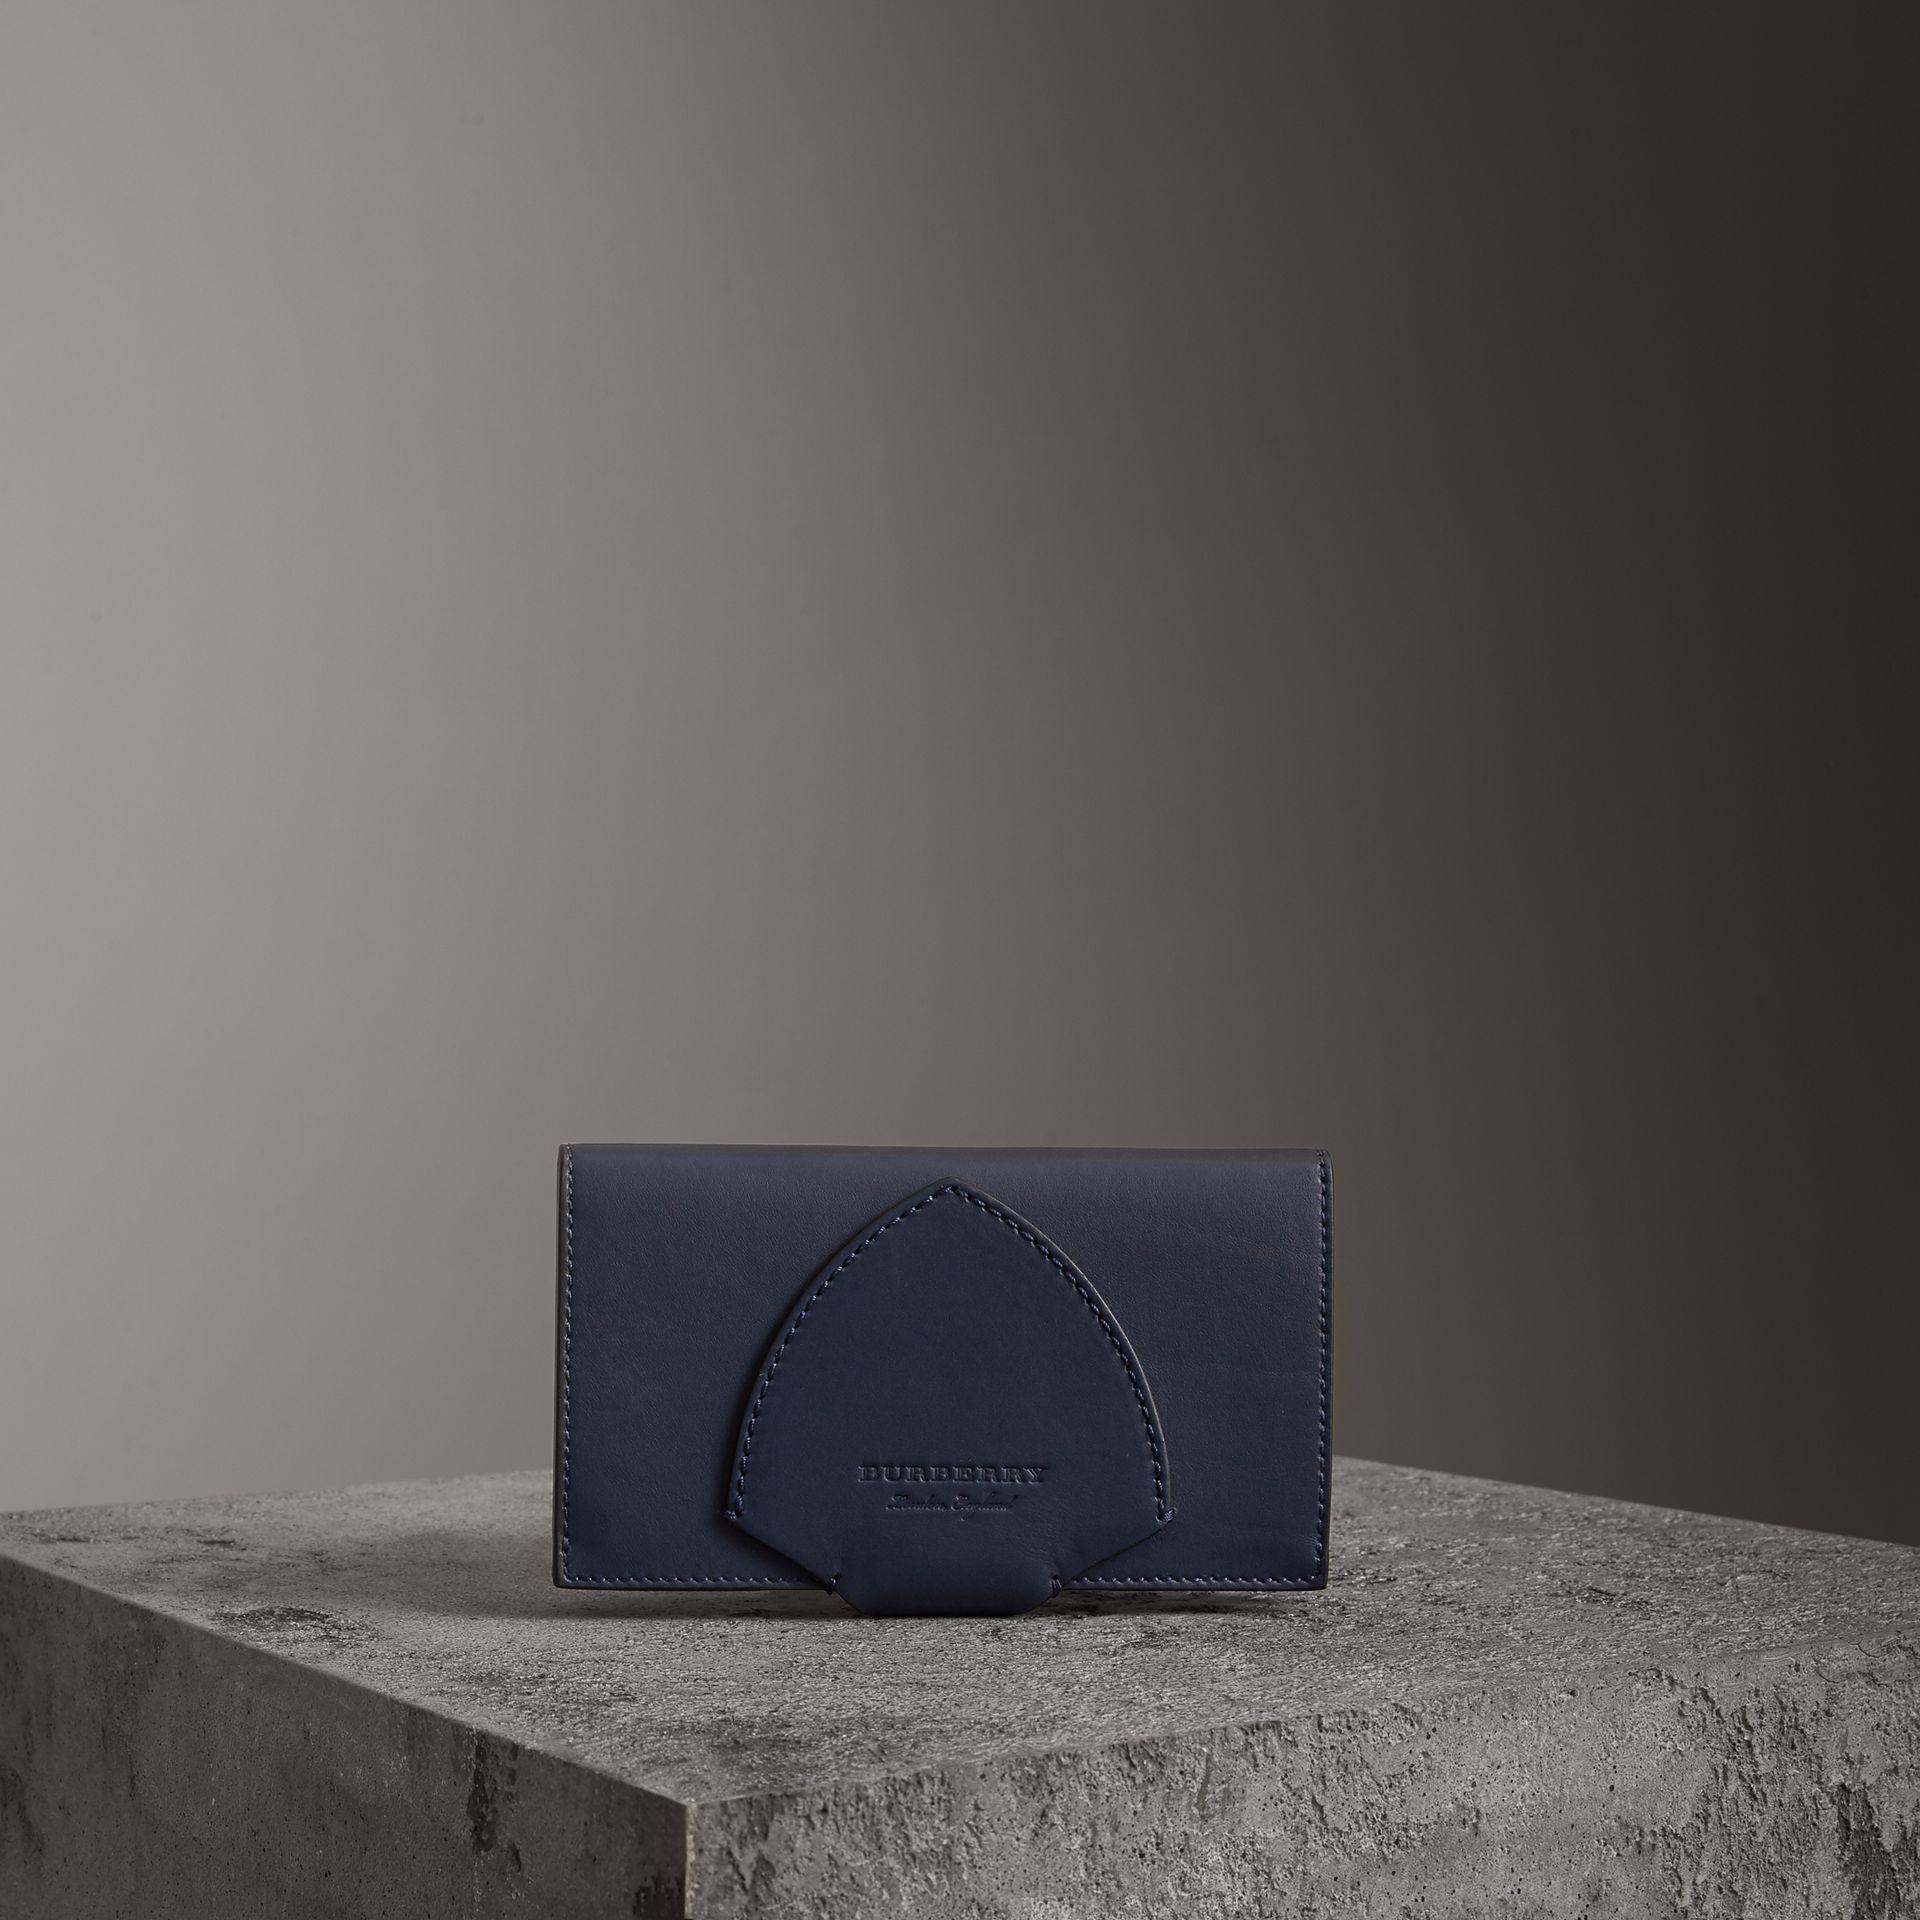 Equestrian Shield Two-tone Leather Continental Wallet in Mid Indigo - Women | Burberry Hong Kong - gallery image 0